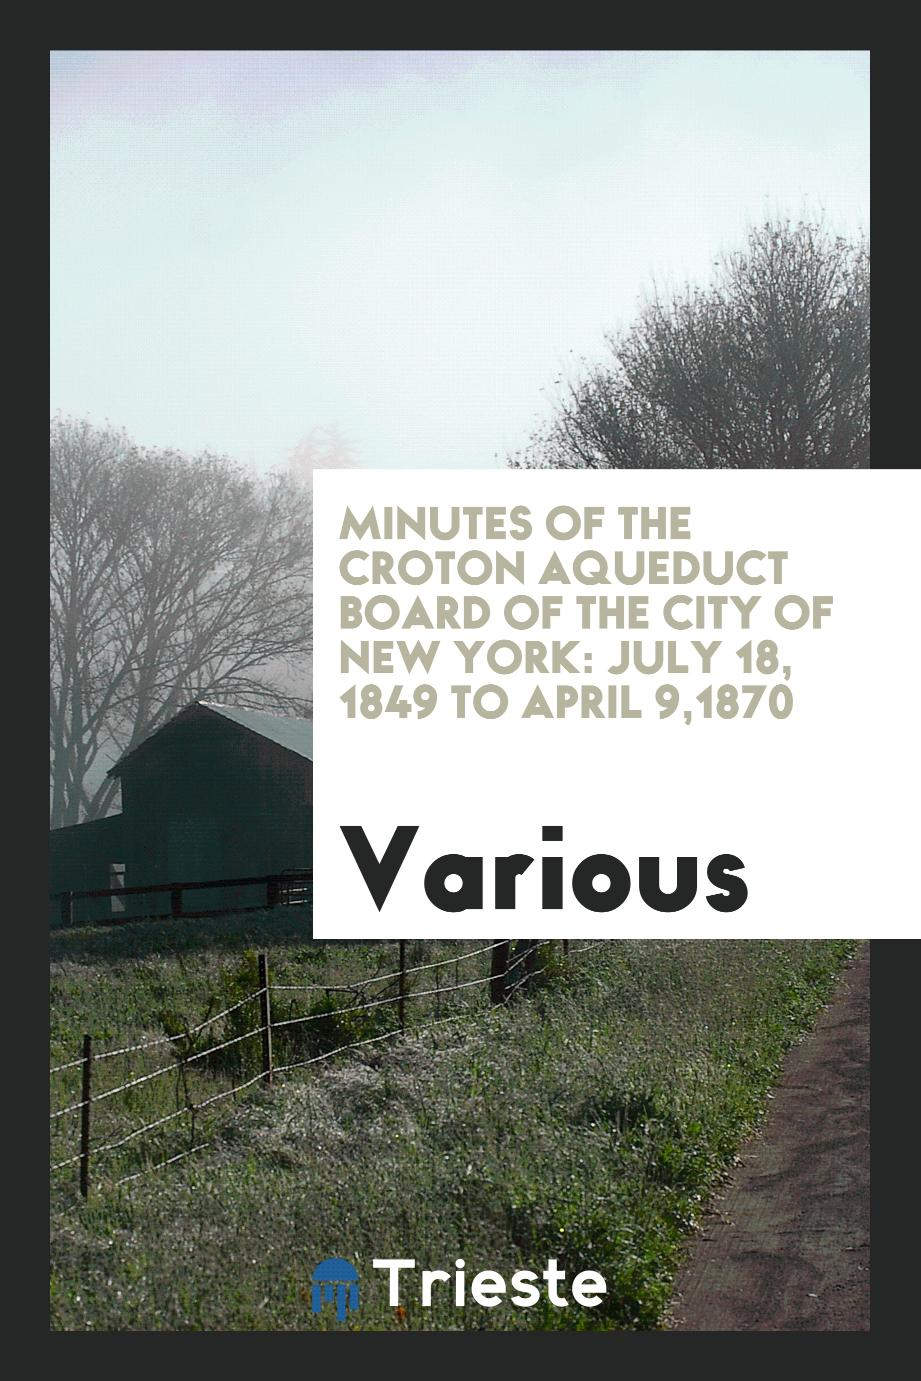 Minutes of the Croton Aqueduct Board of the City of New York: July 18, 1849 to April 9,1870